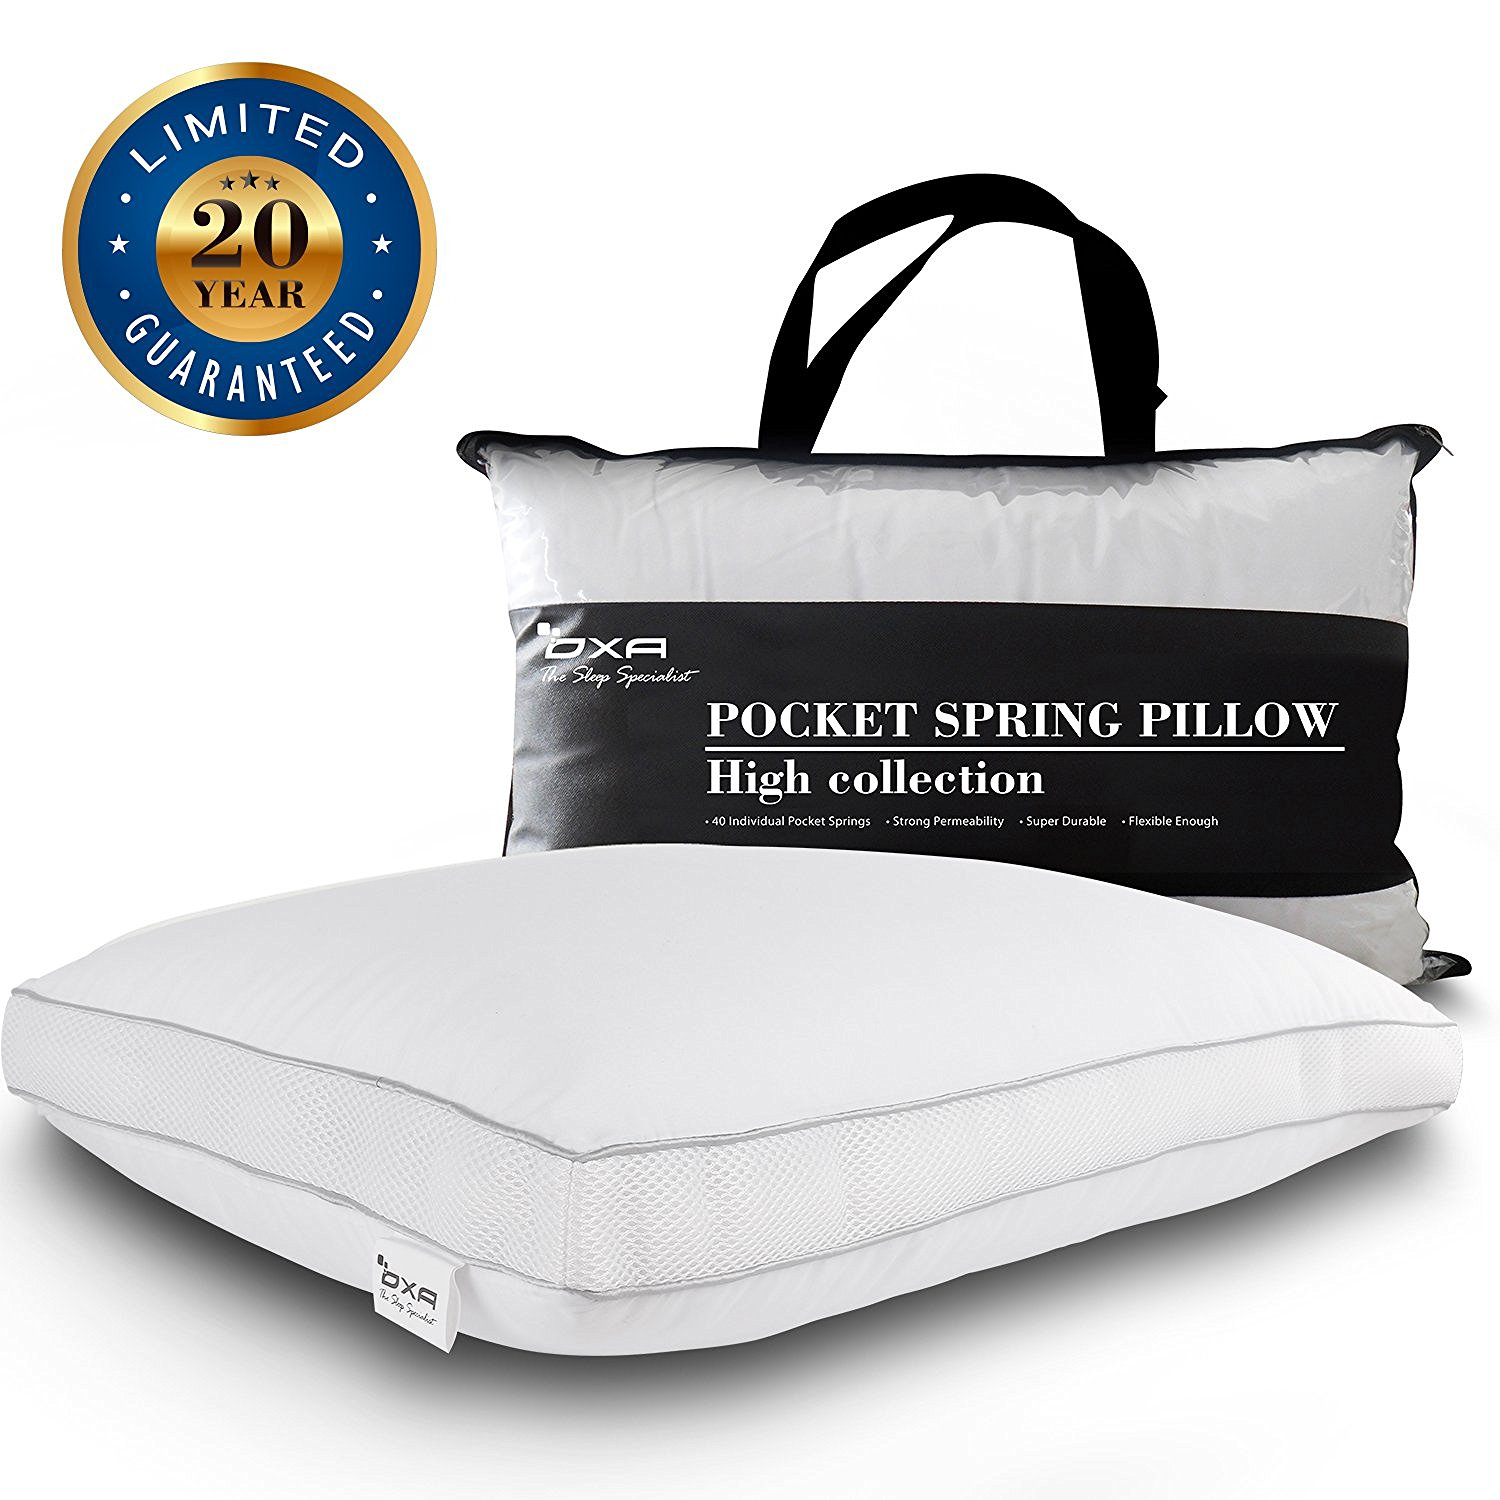 kitchen pack pillows luxury pillow com bed sweet filled with white amazon home top by dp and feathers down collection goose quality standard